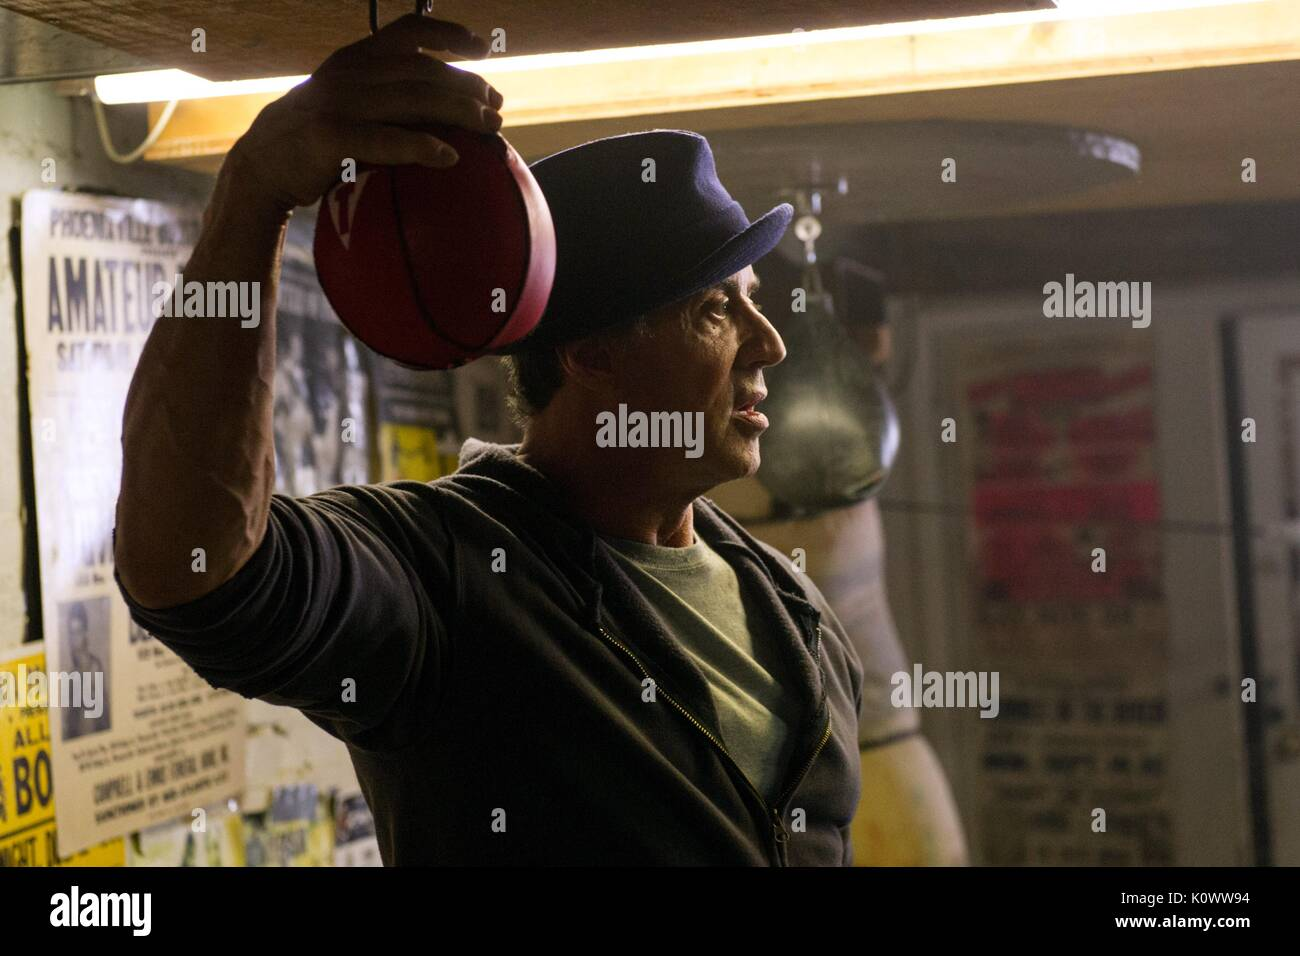 SYLVESTER STALLONE CREED (2015) - Stock Image